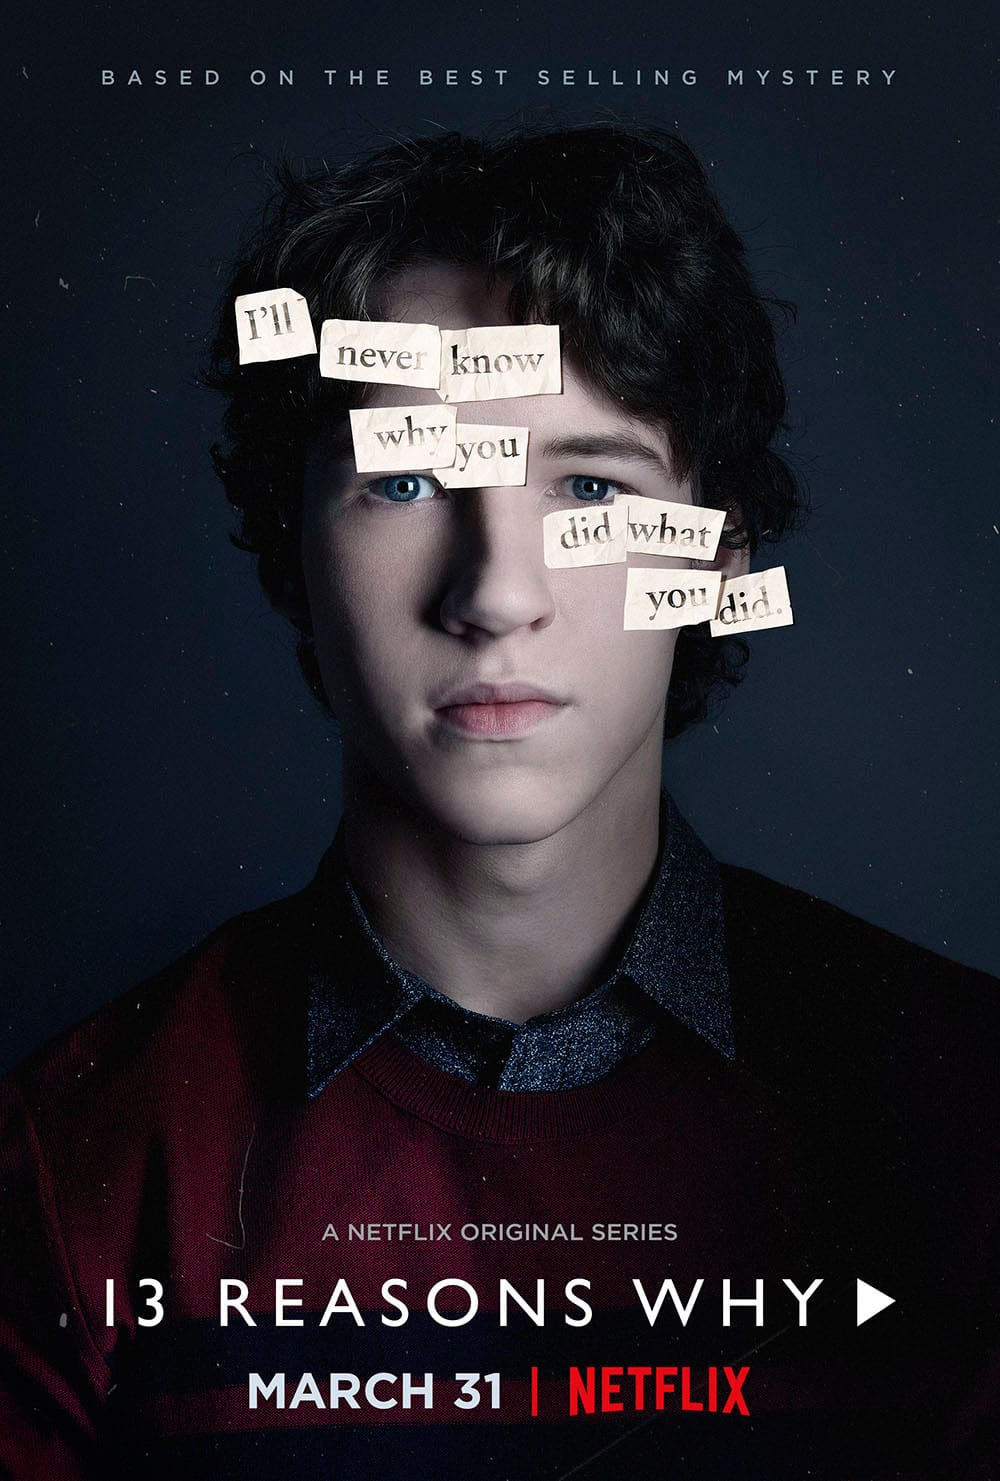 13 reasons why poster Tyler